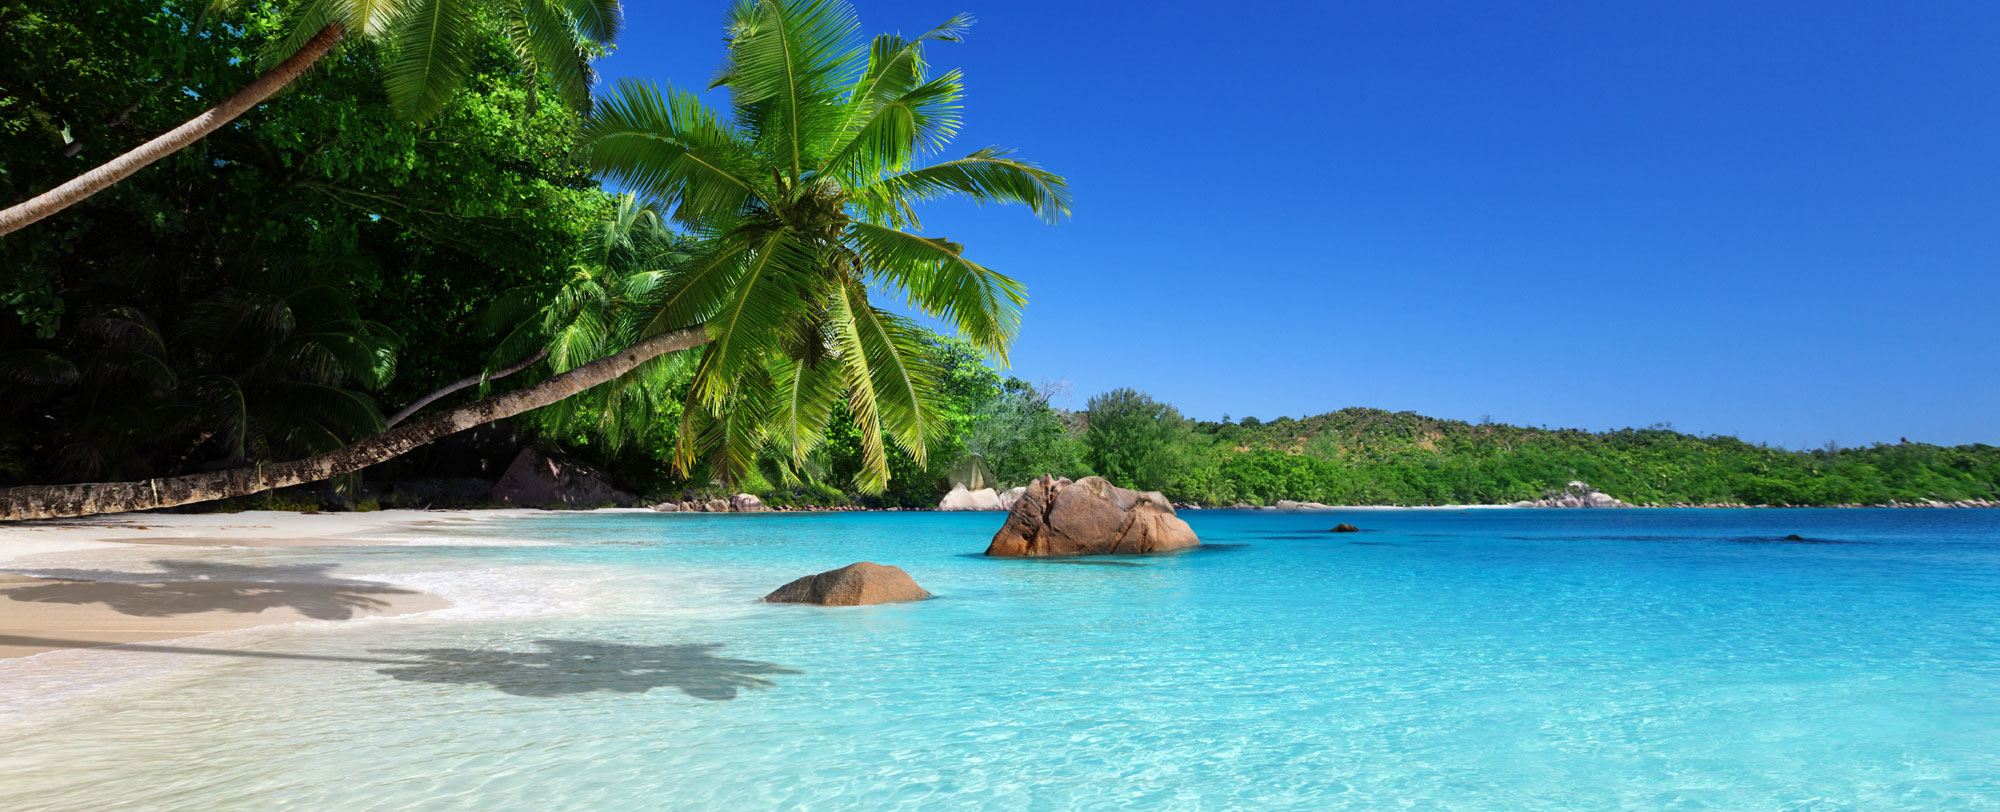 Where to go: Maldvies vs Seychelles